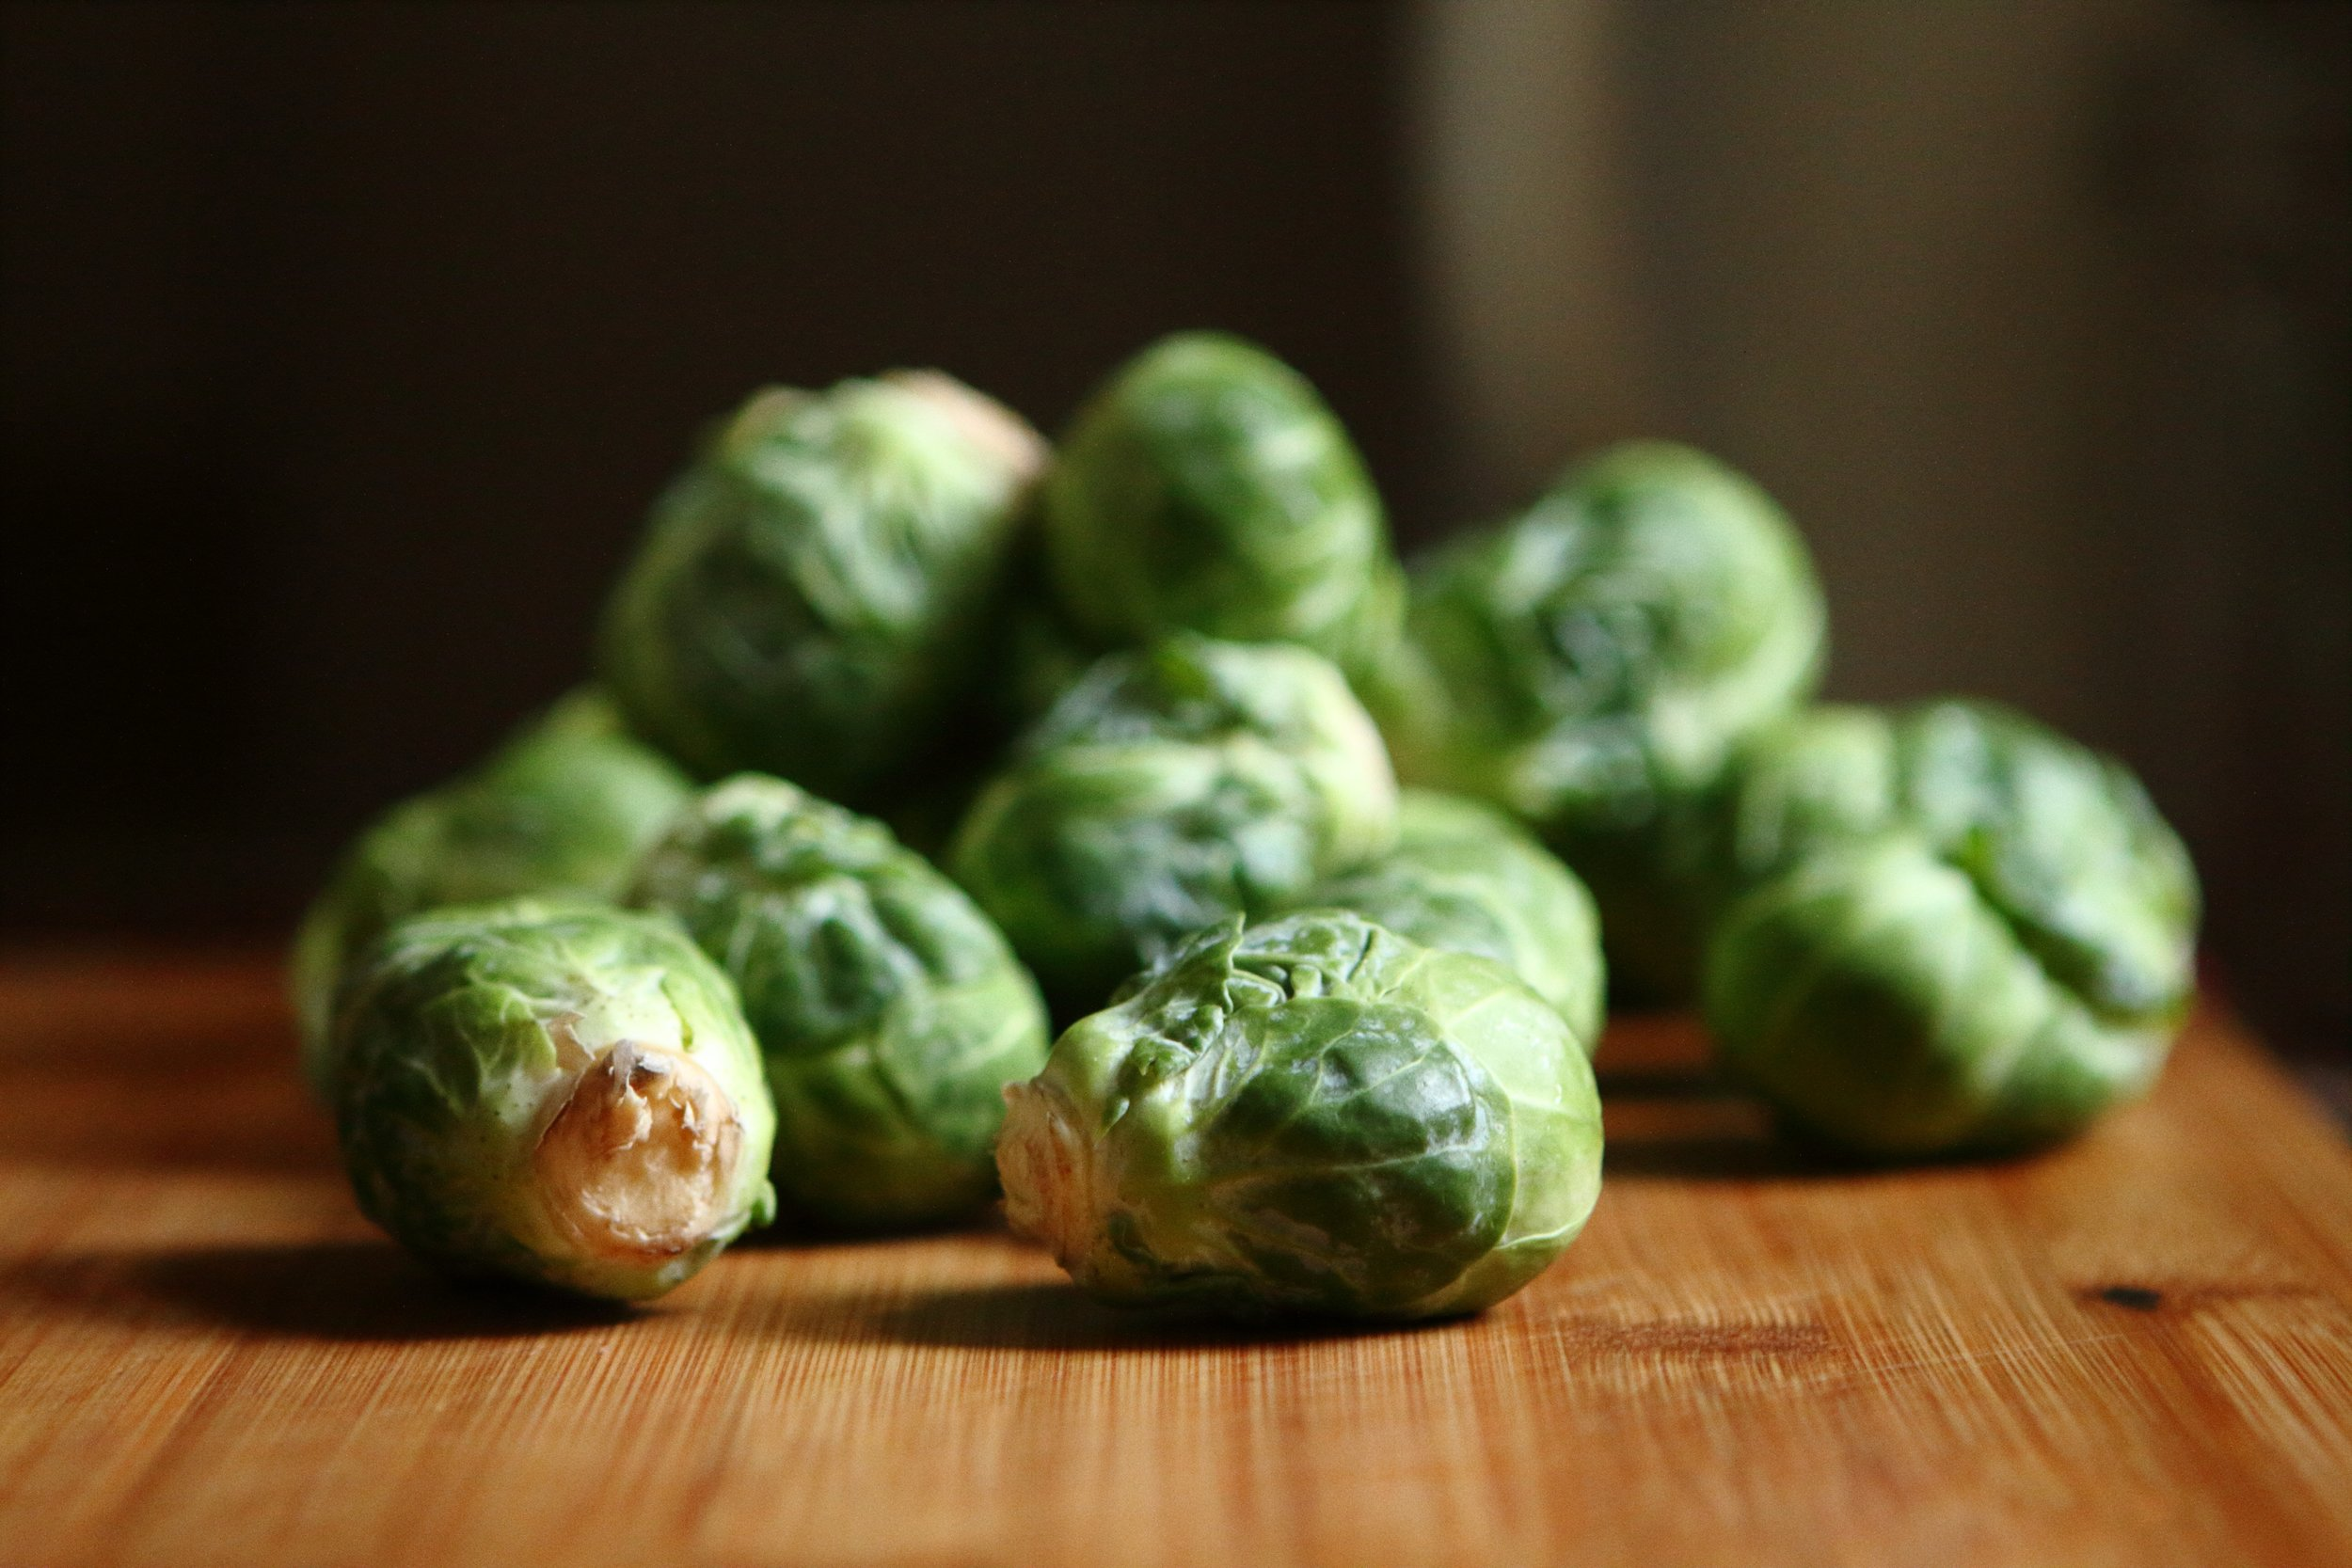 Brussel sprouts are one of the healthiest foods